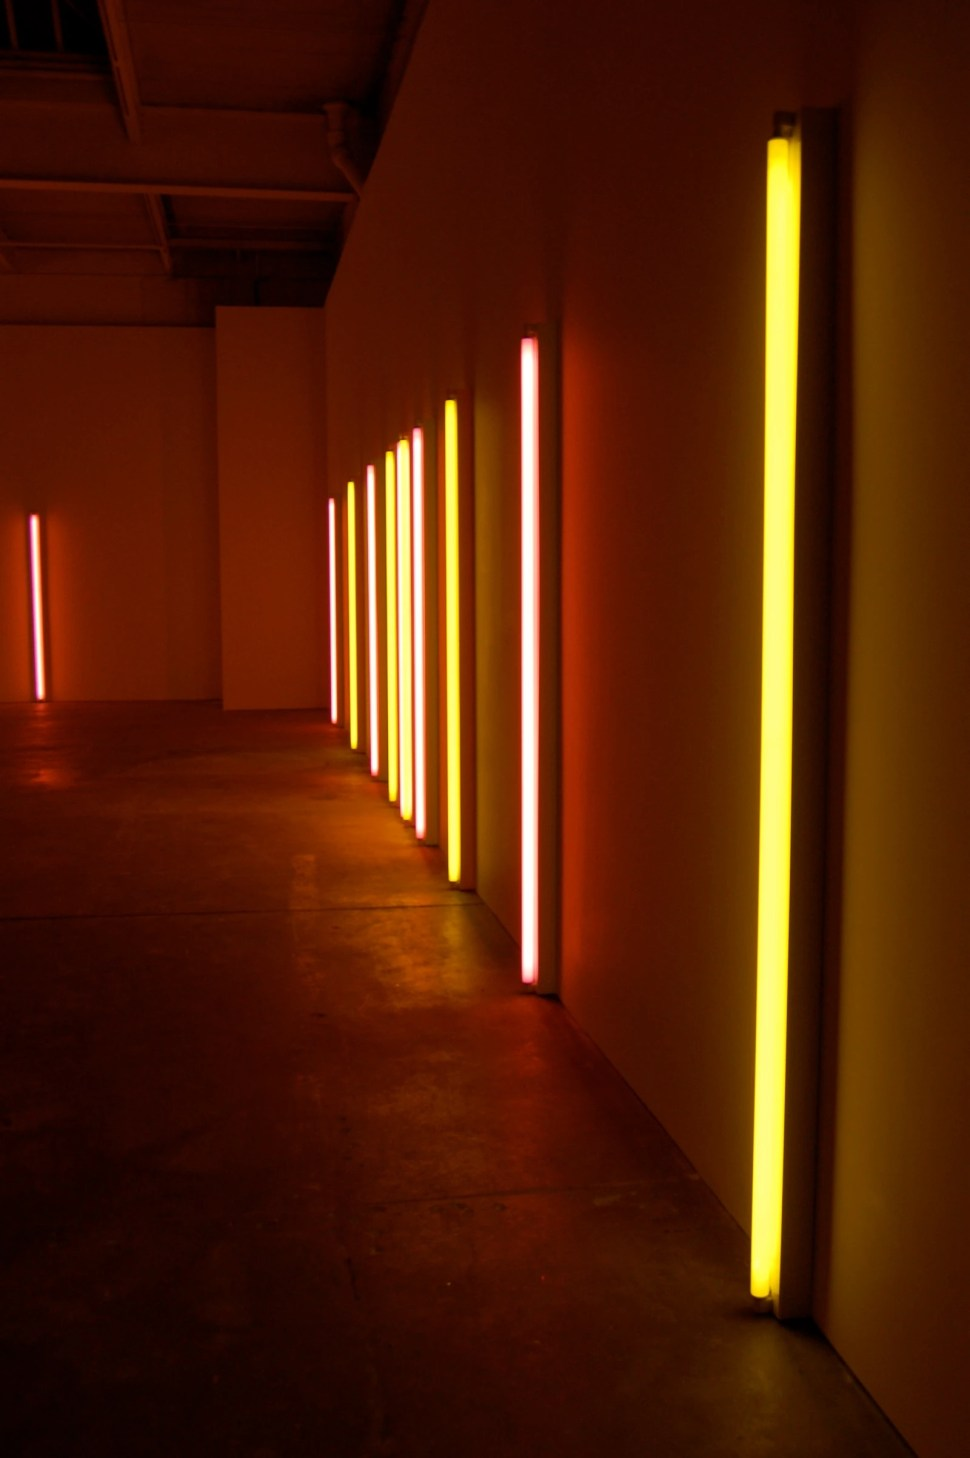 Dan Flavin alternating pink and gold 1967